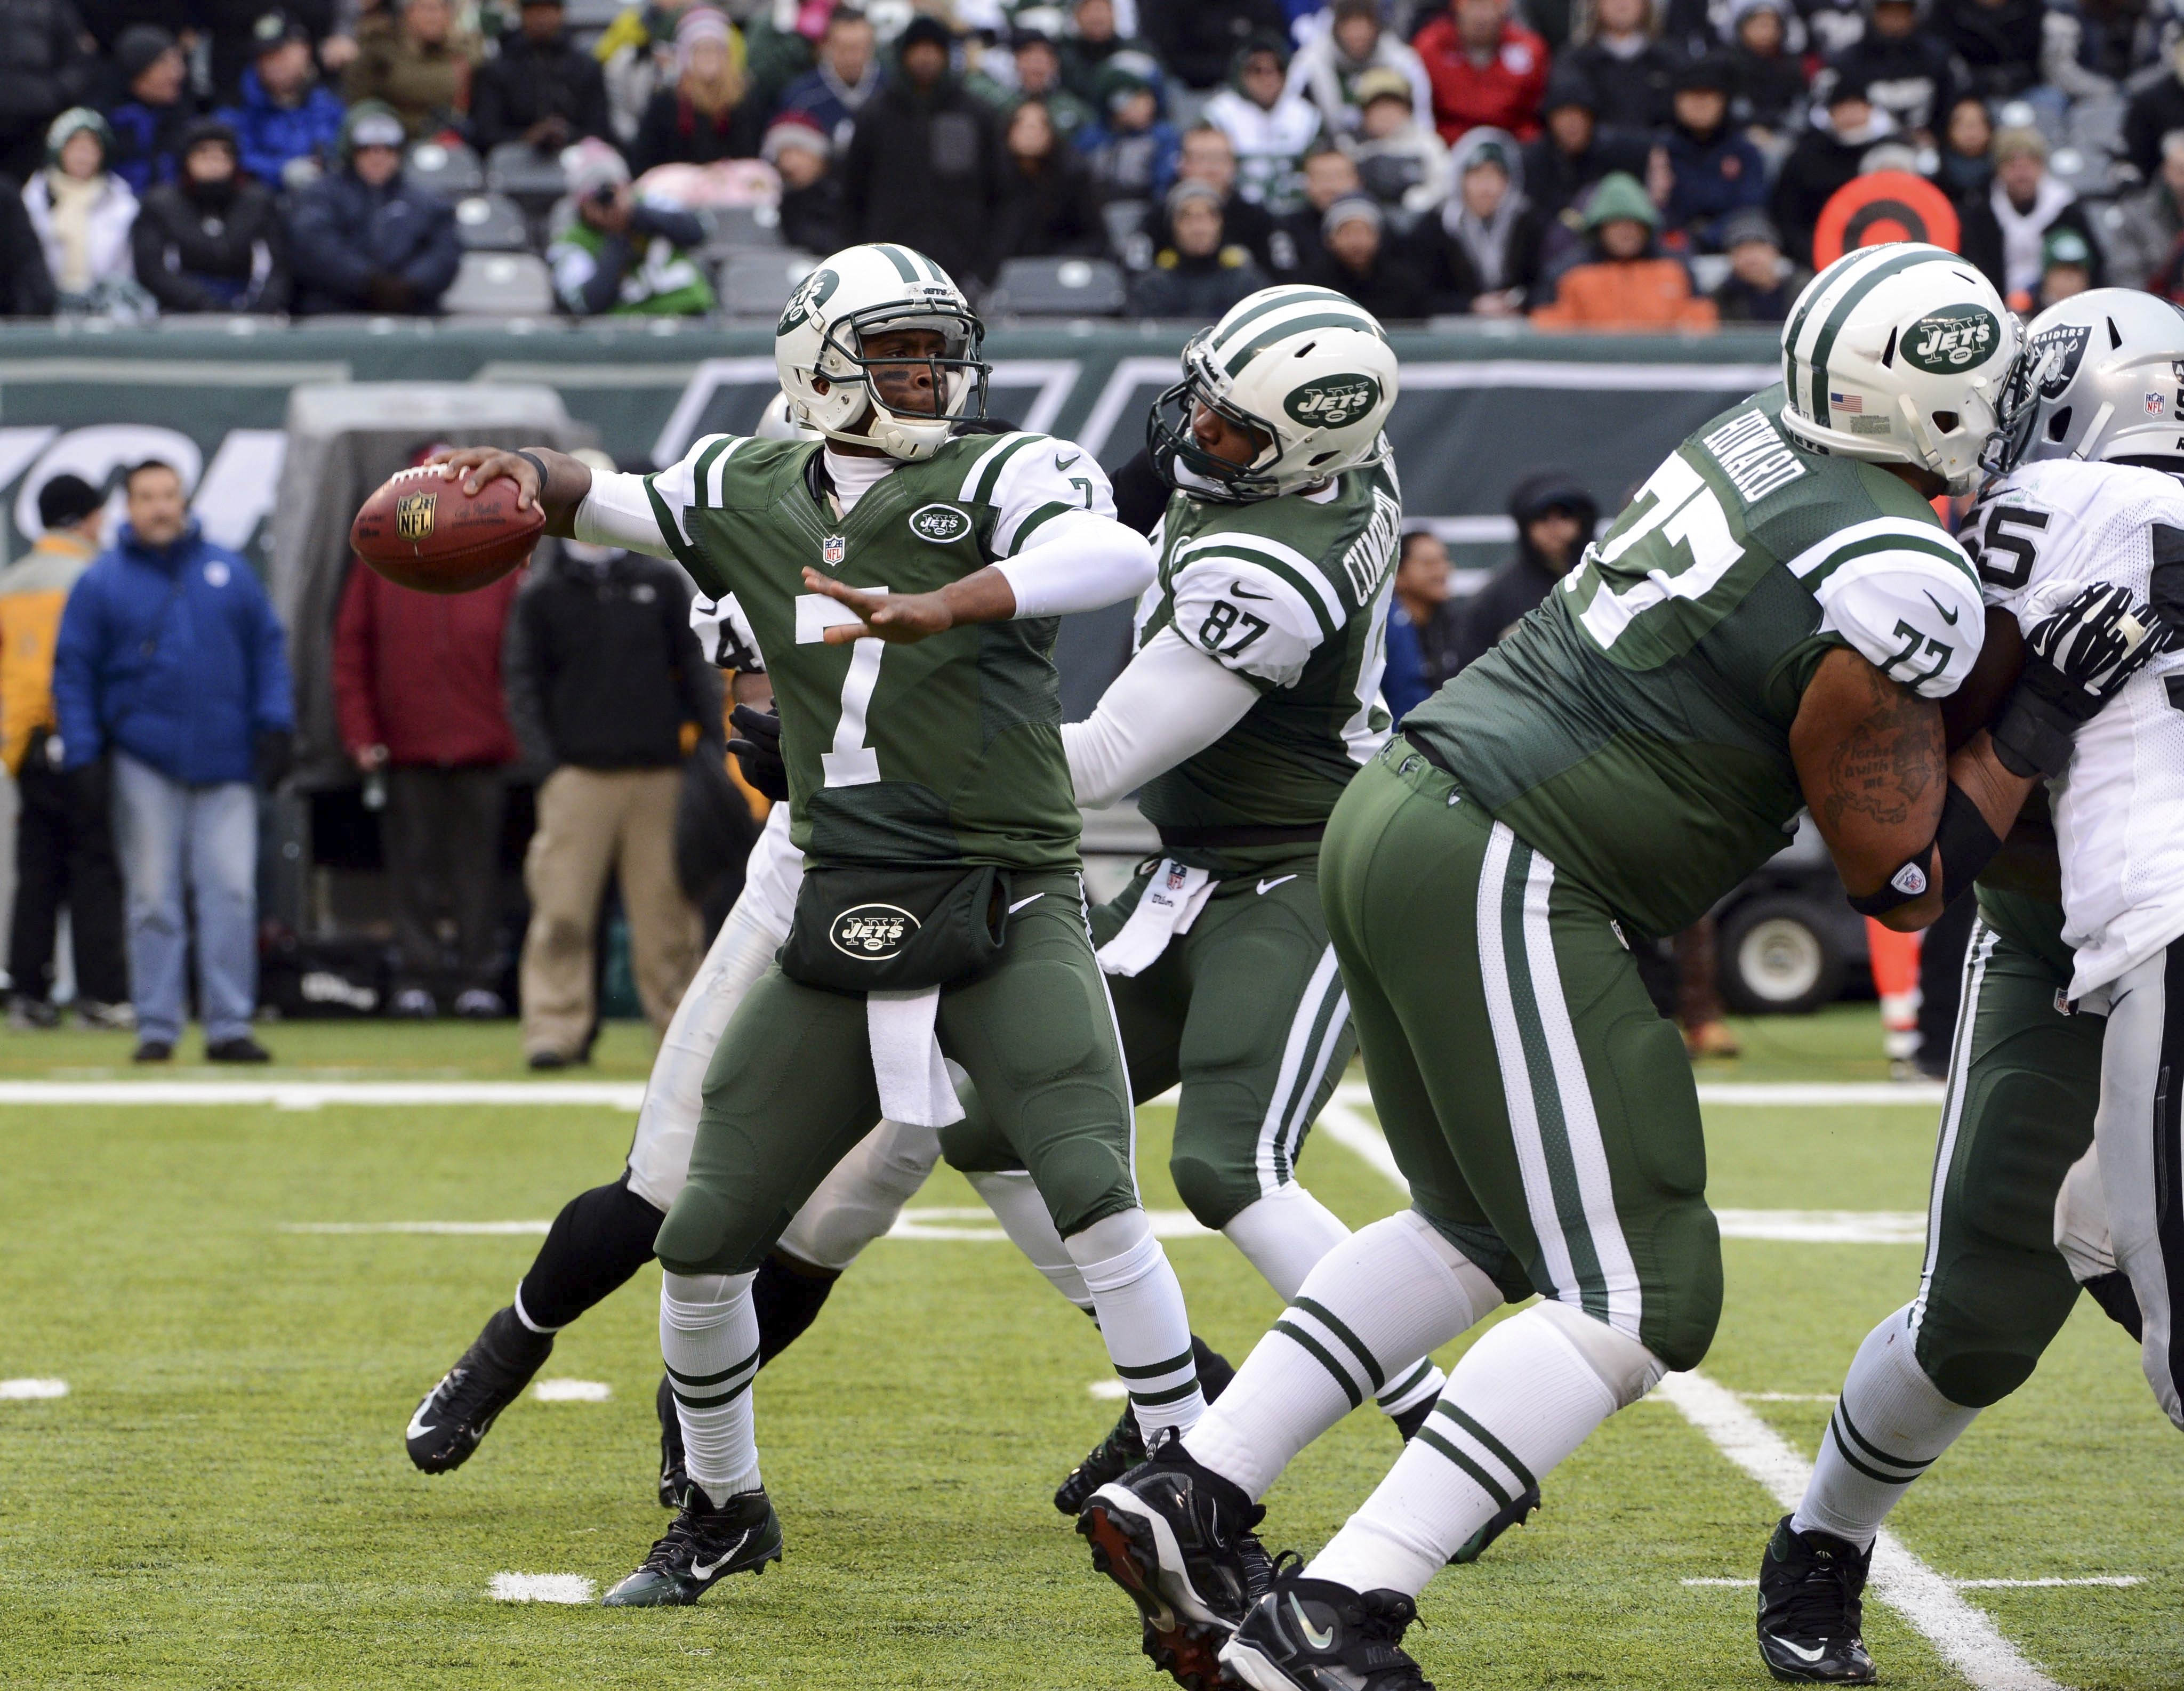 Jets quarterback Geno Smith has taken the initiative by putting together workouts with other skill-position members of the offense.